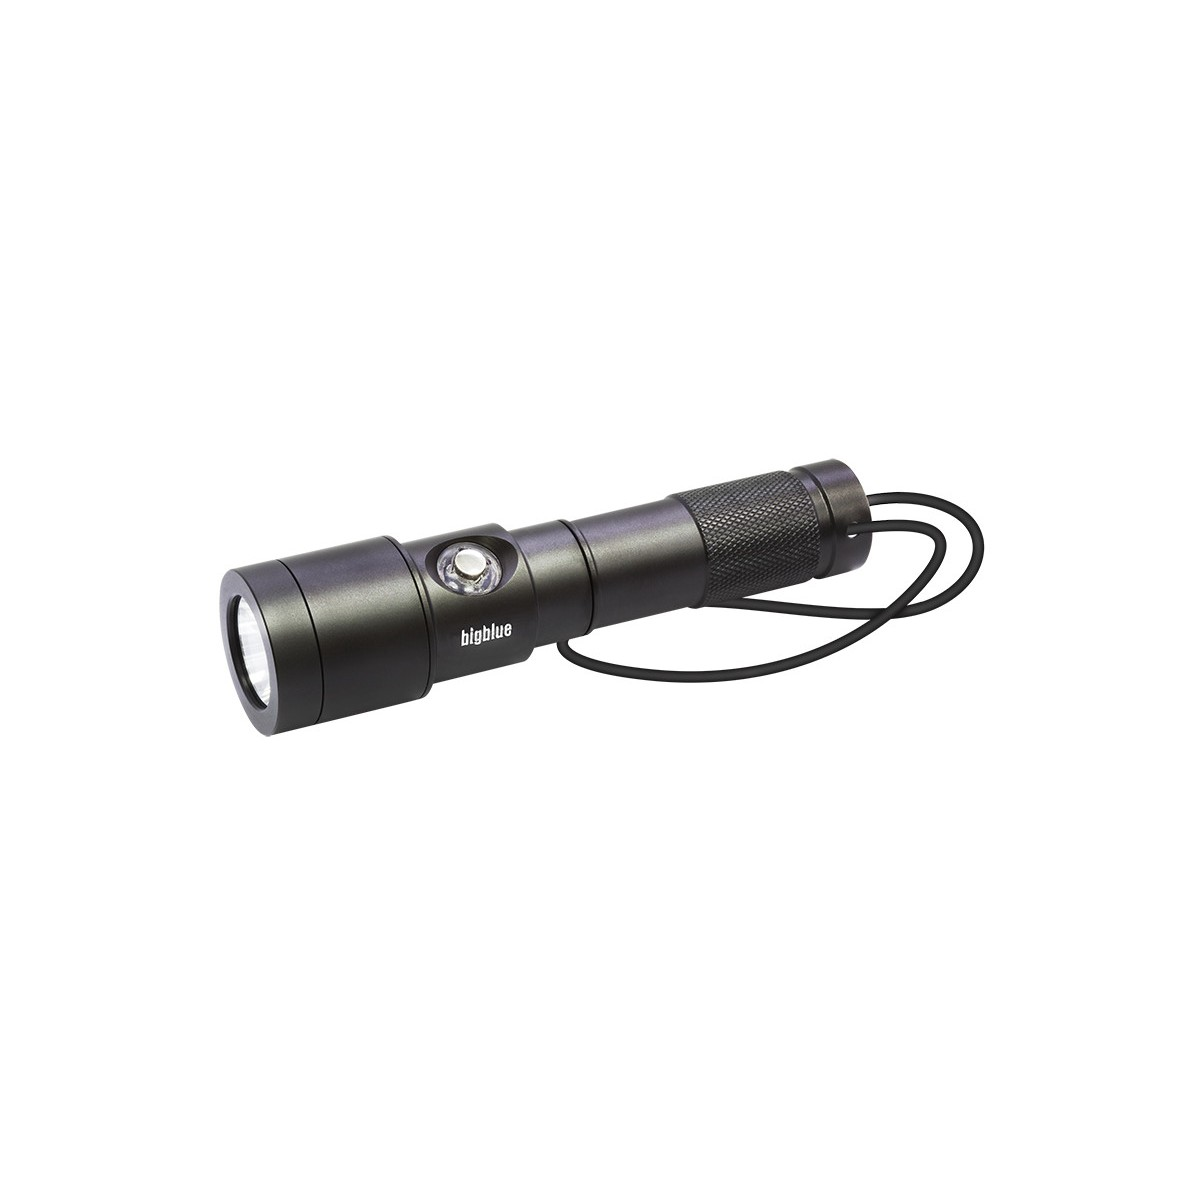 Bigblue 1200 Lumen Narrow Beam(AL1200NP)